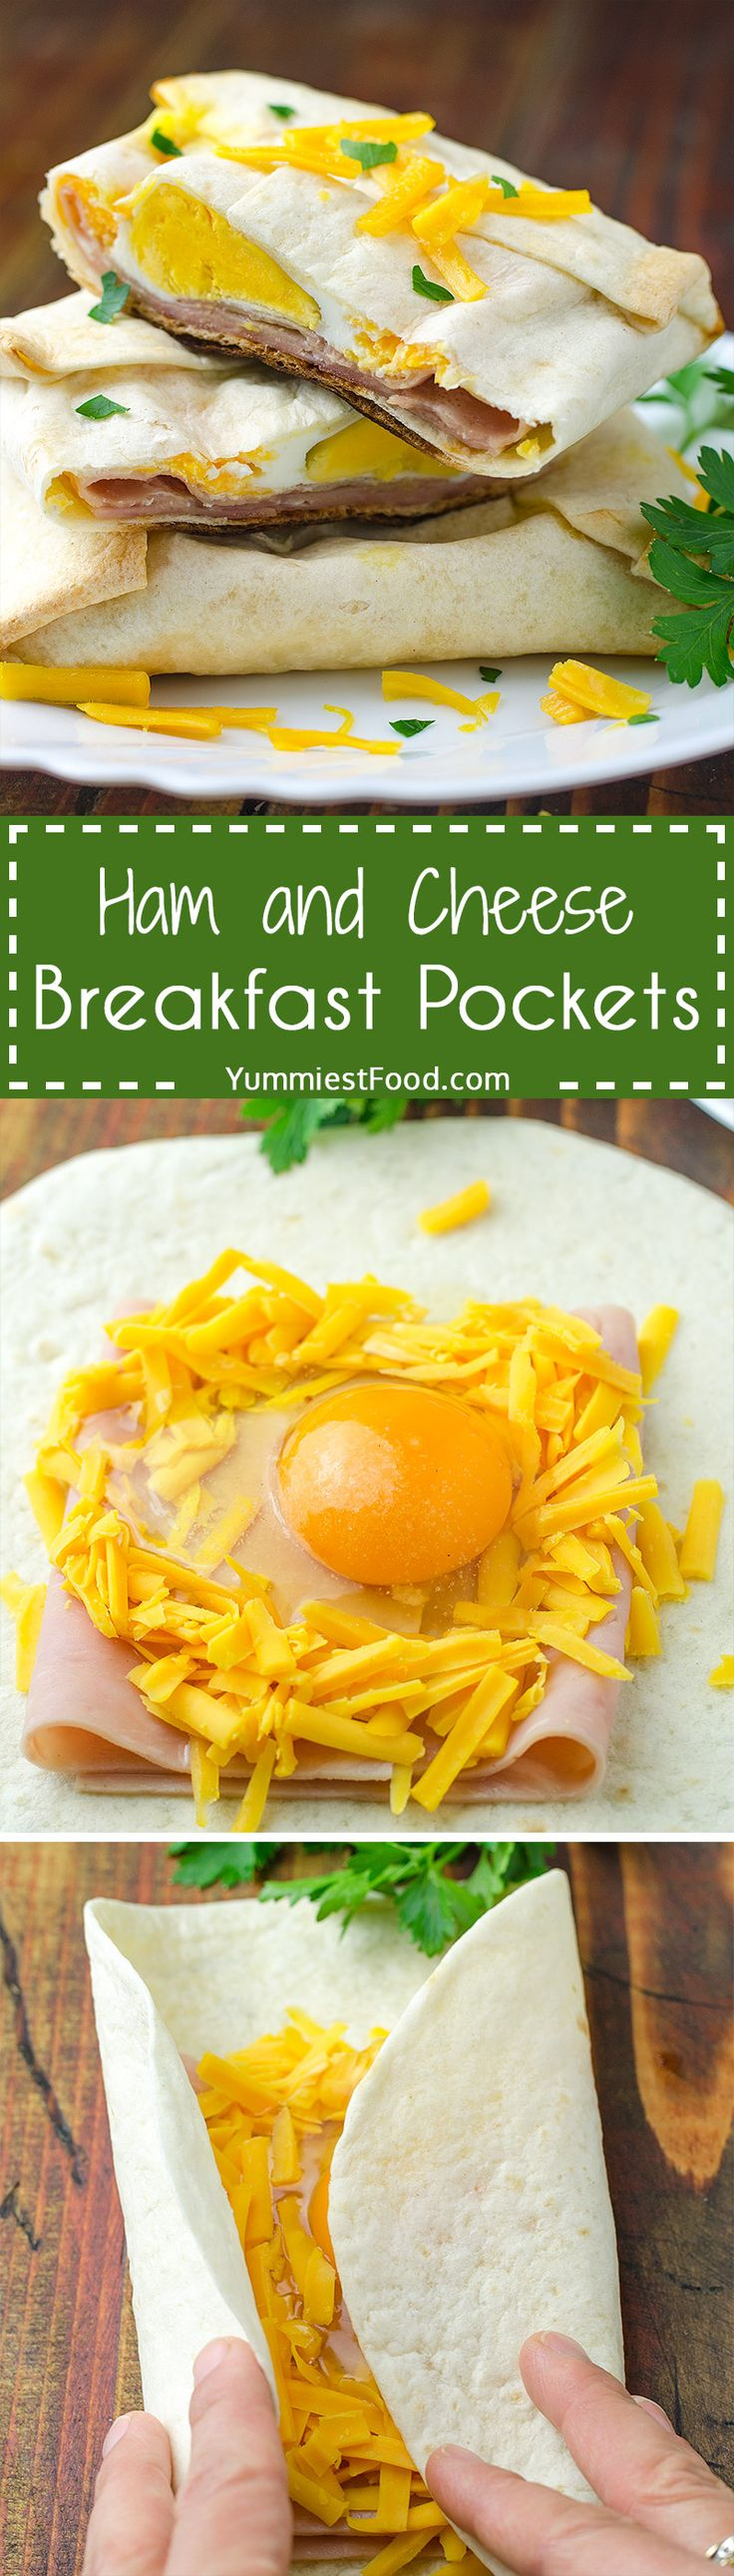 Easy Ham and Cheese Breakfast Pockets - Simple ingredients that you likely have in your kitchen can make this fabulous friendly breakfast. This will be everyone's weekend breakfast of choice it is loaded with ham, cheese and egg. Great simple breakfast recipe!